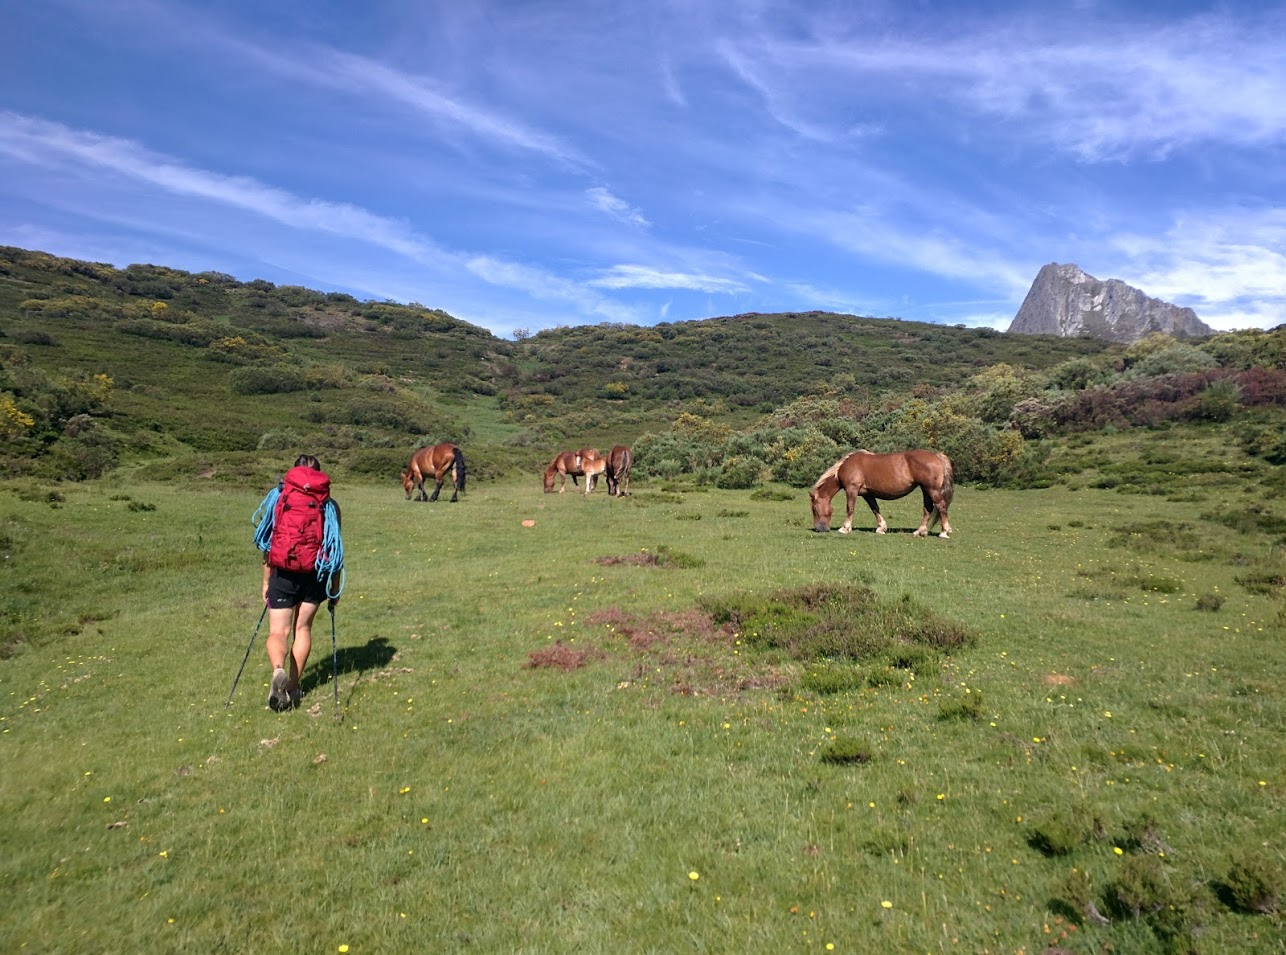 Not the most obvious trail - but just ignore the cows and horses and walk towards the pointy thing.